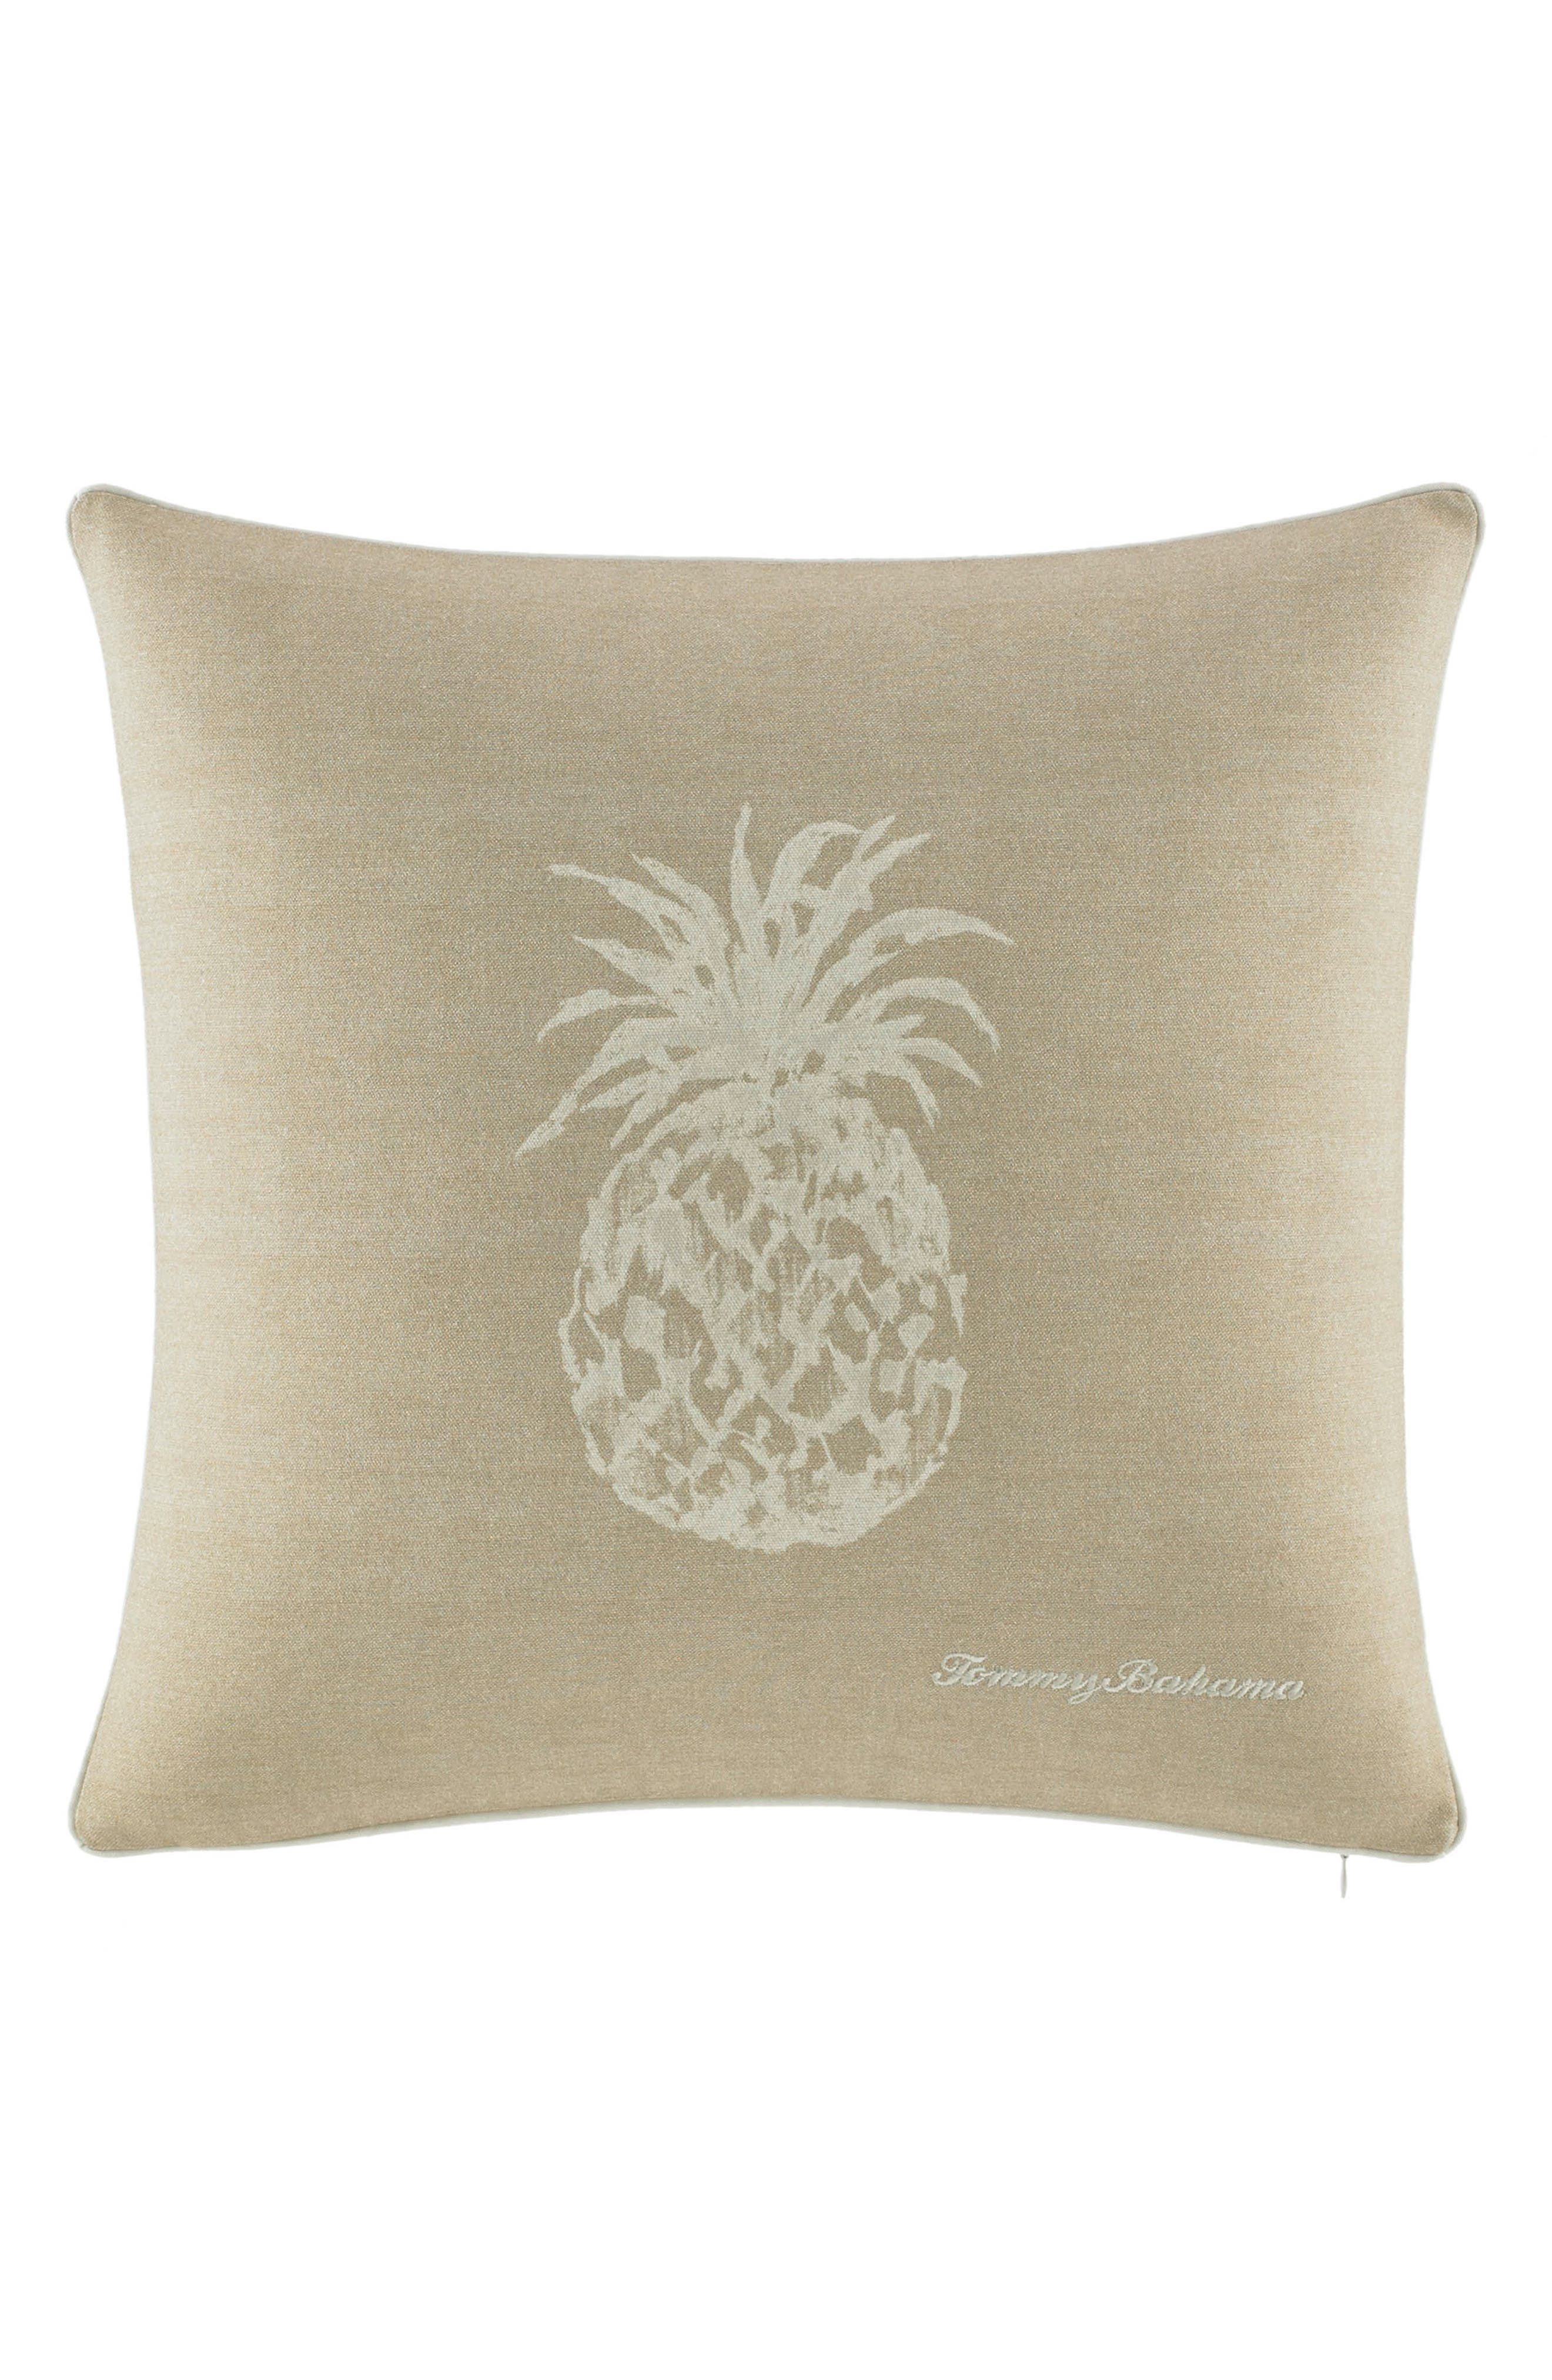 TOMMY BAHAMA,                             Pineapple Canvas Accent Pillow,                             Main thumbnail 1, color,                             250